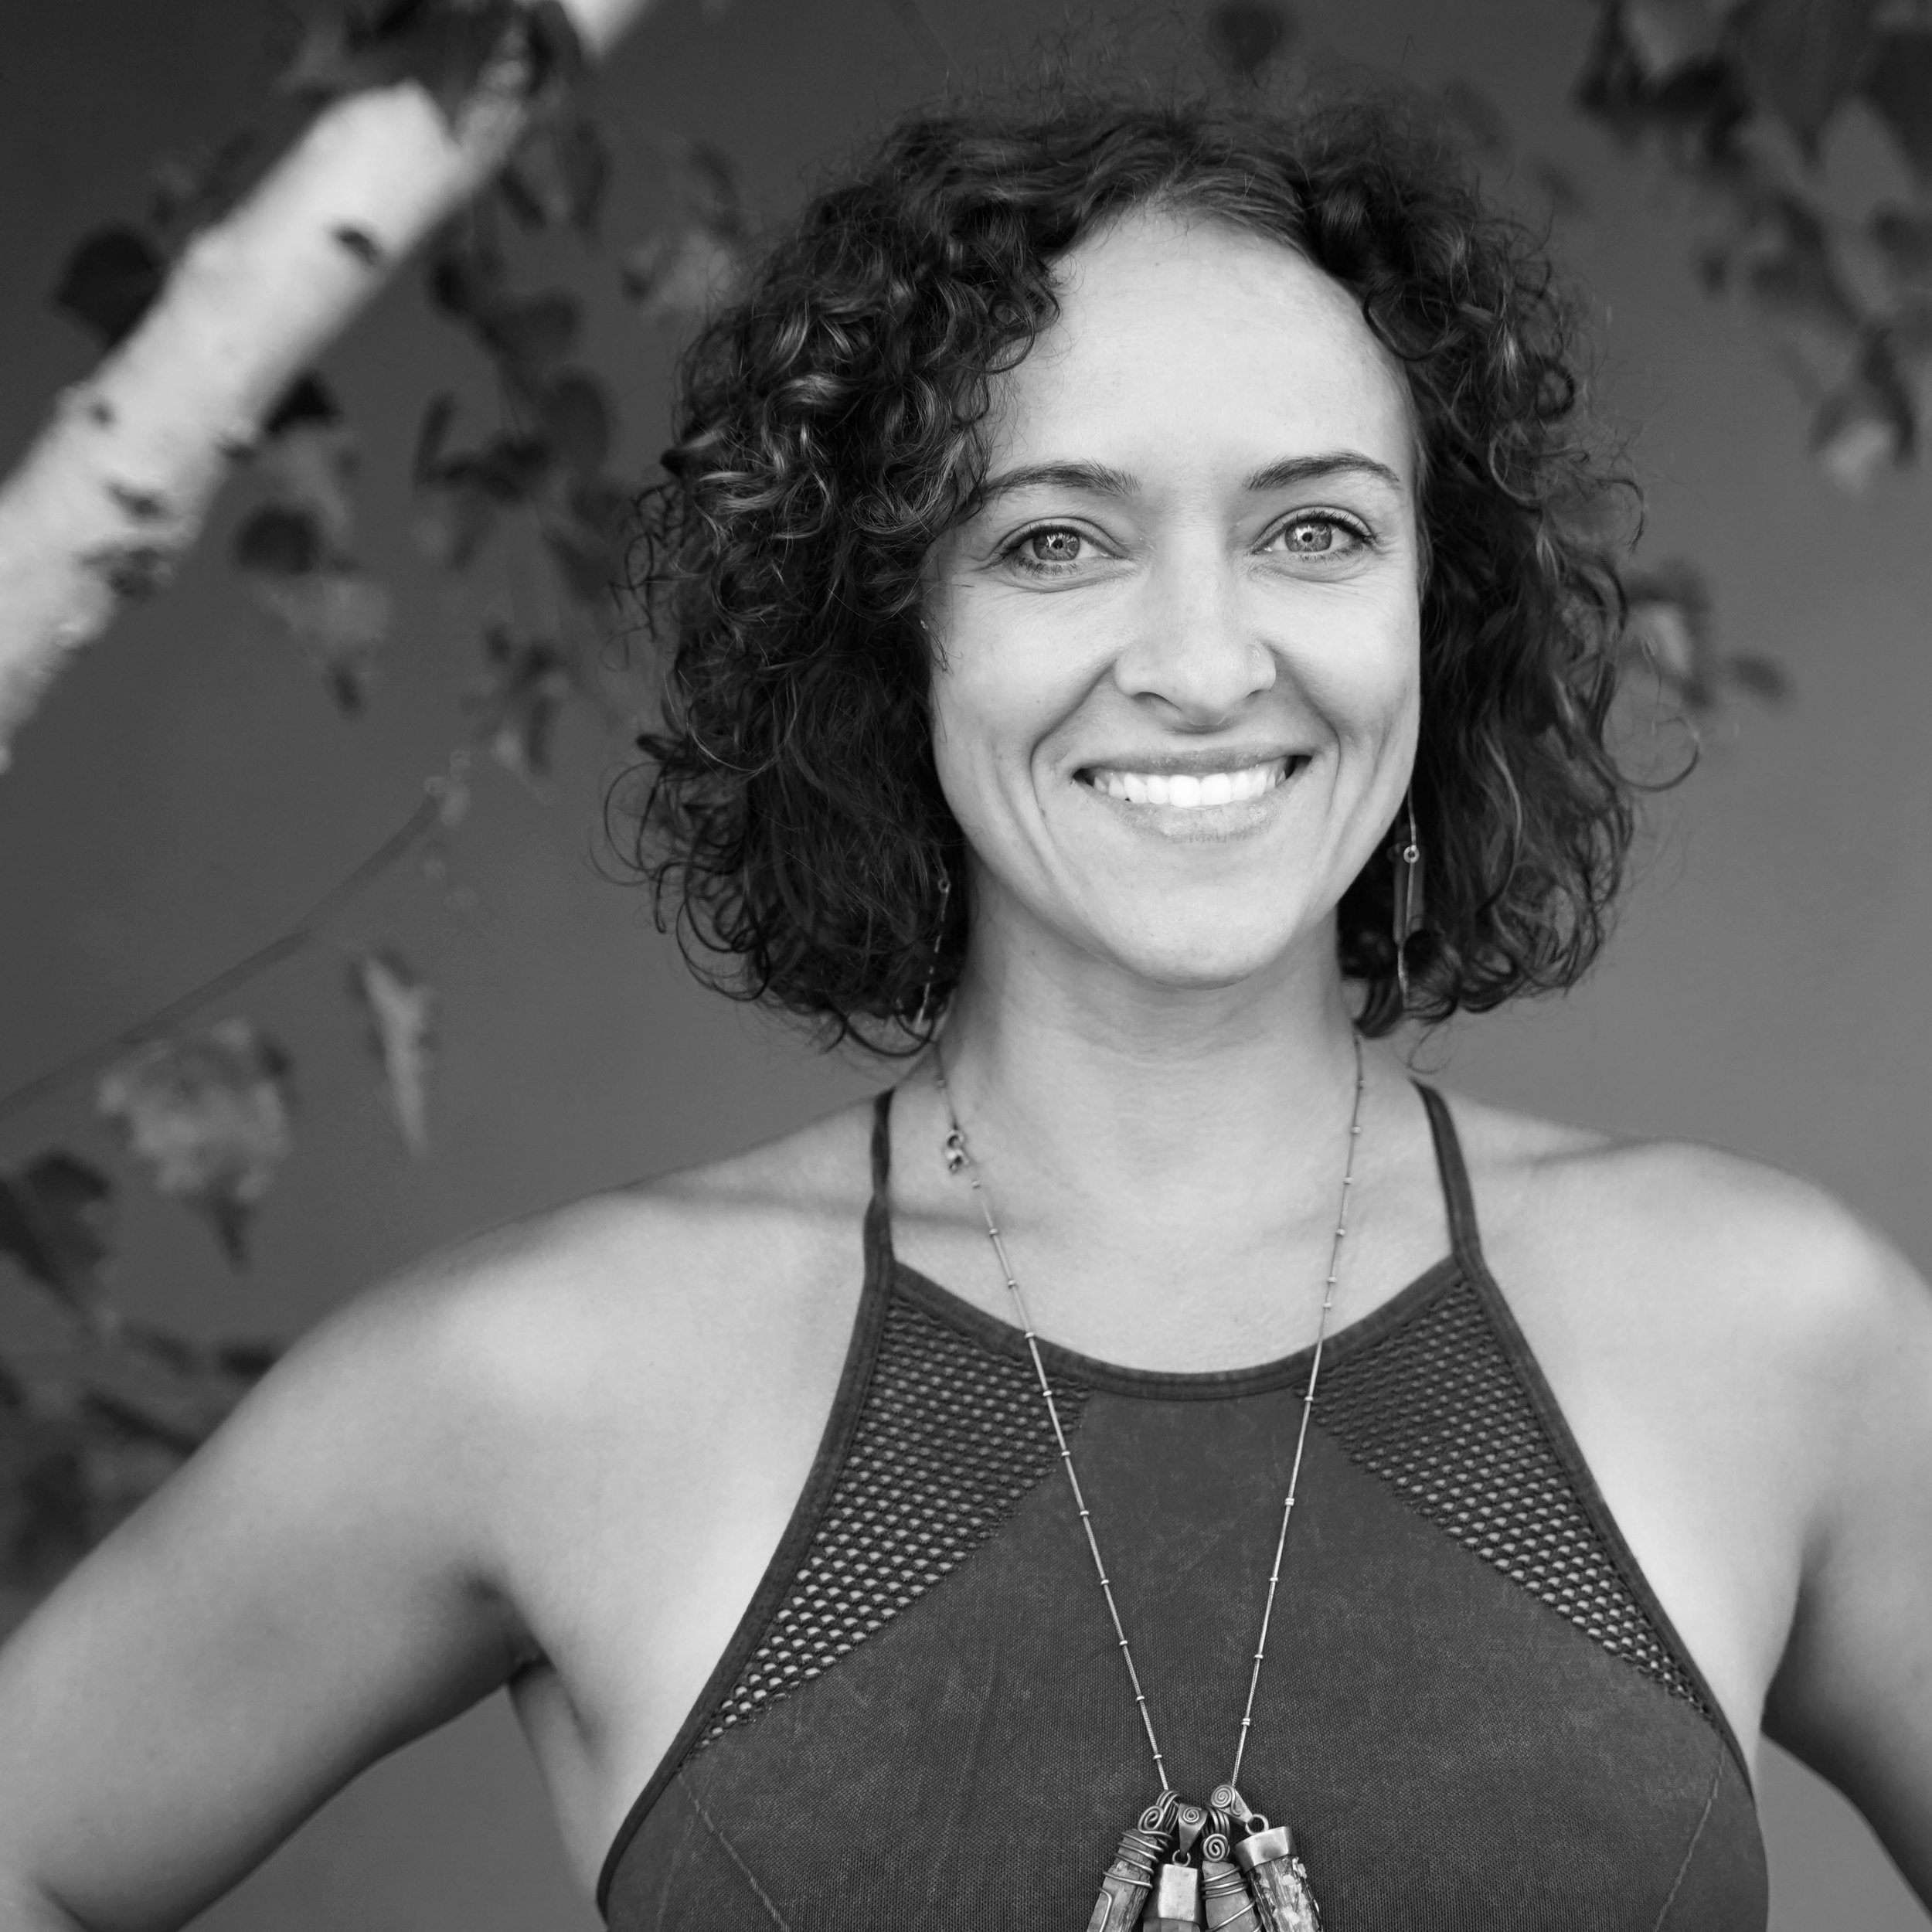 kelliann reginato   Kelliann's classes are heated to 90 degrees. Expect a slow but steady make-you-sweat flow and Forrest yoga influenced sequences.  Read more…